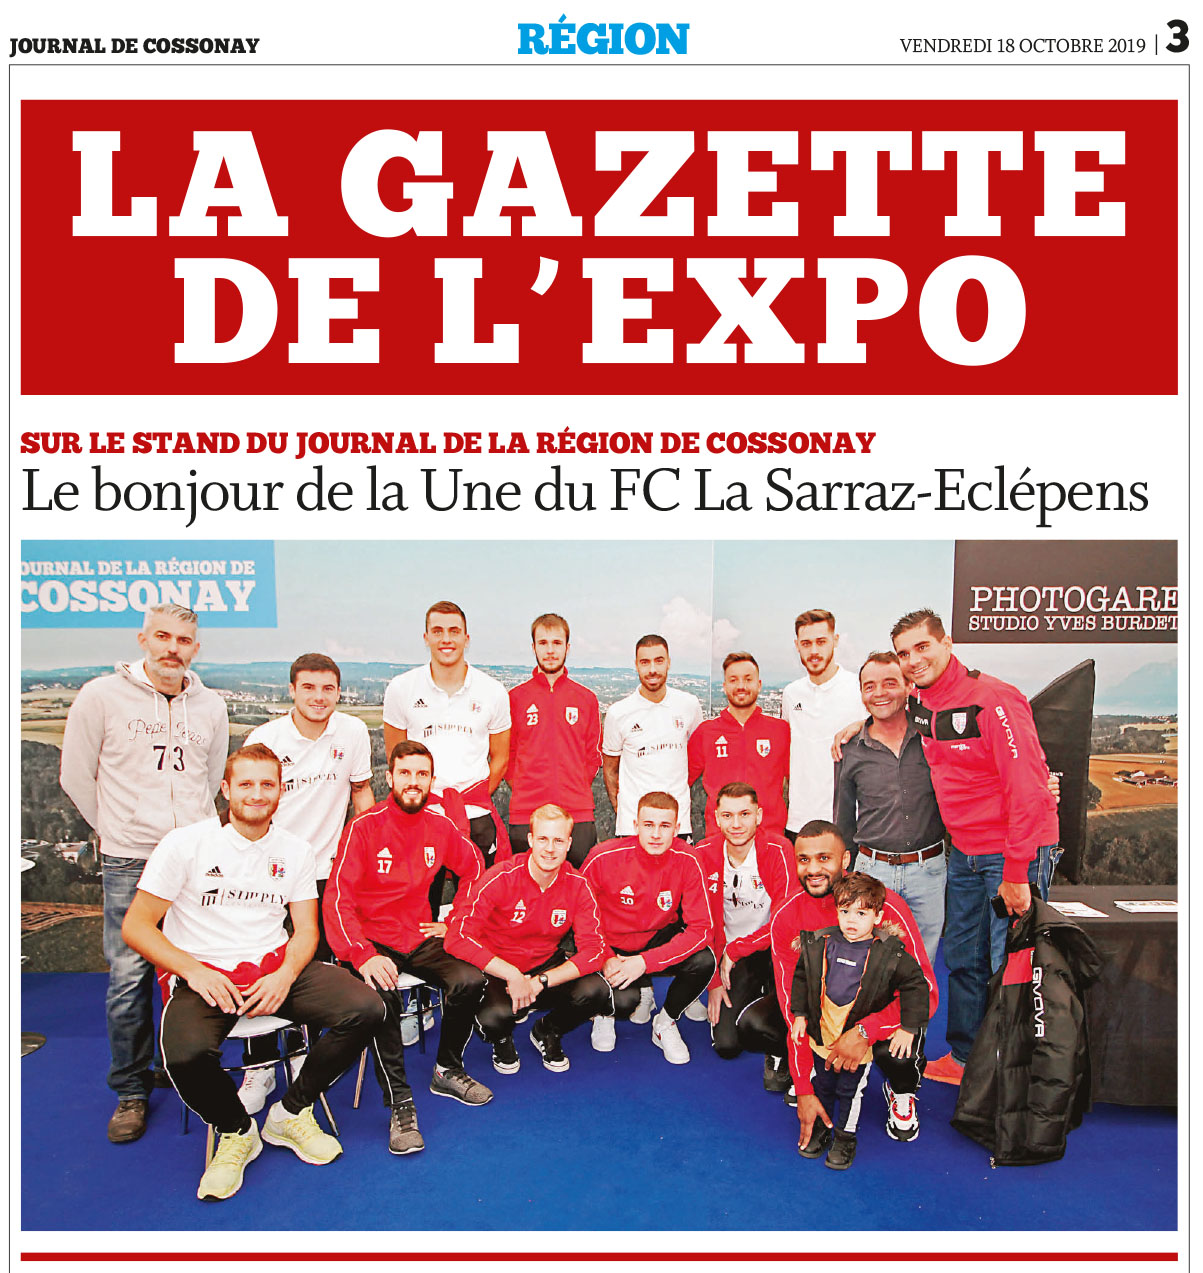 La Gazette de l'Expo !